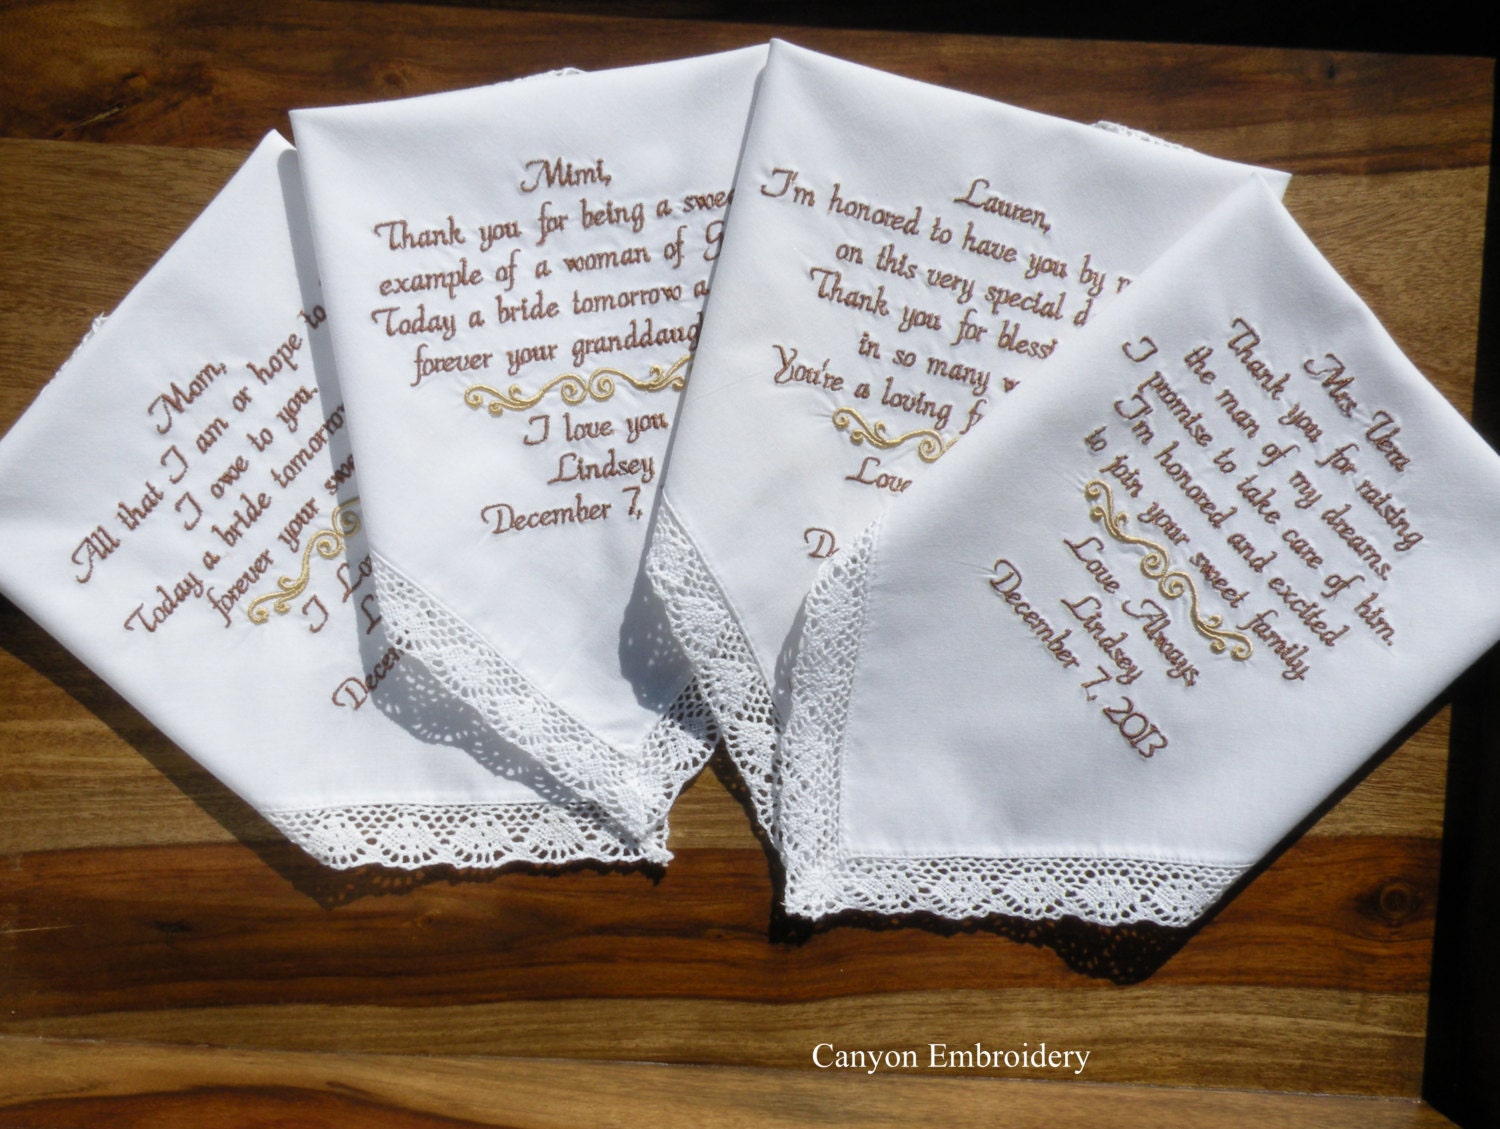 Wedding Handkerchiefs For The Family: Embroidered Wedding Handkerchief Wedding Hankys, Gift